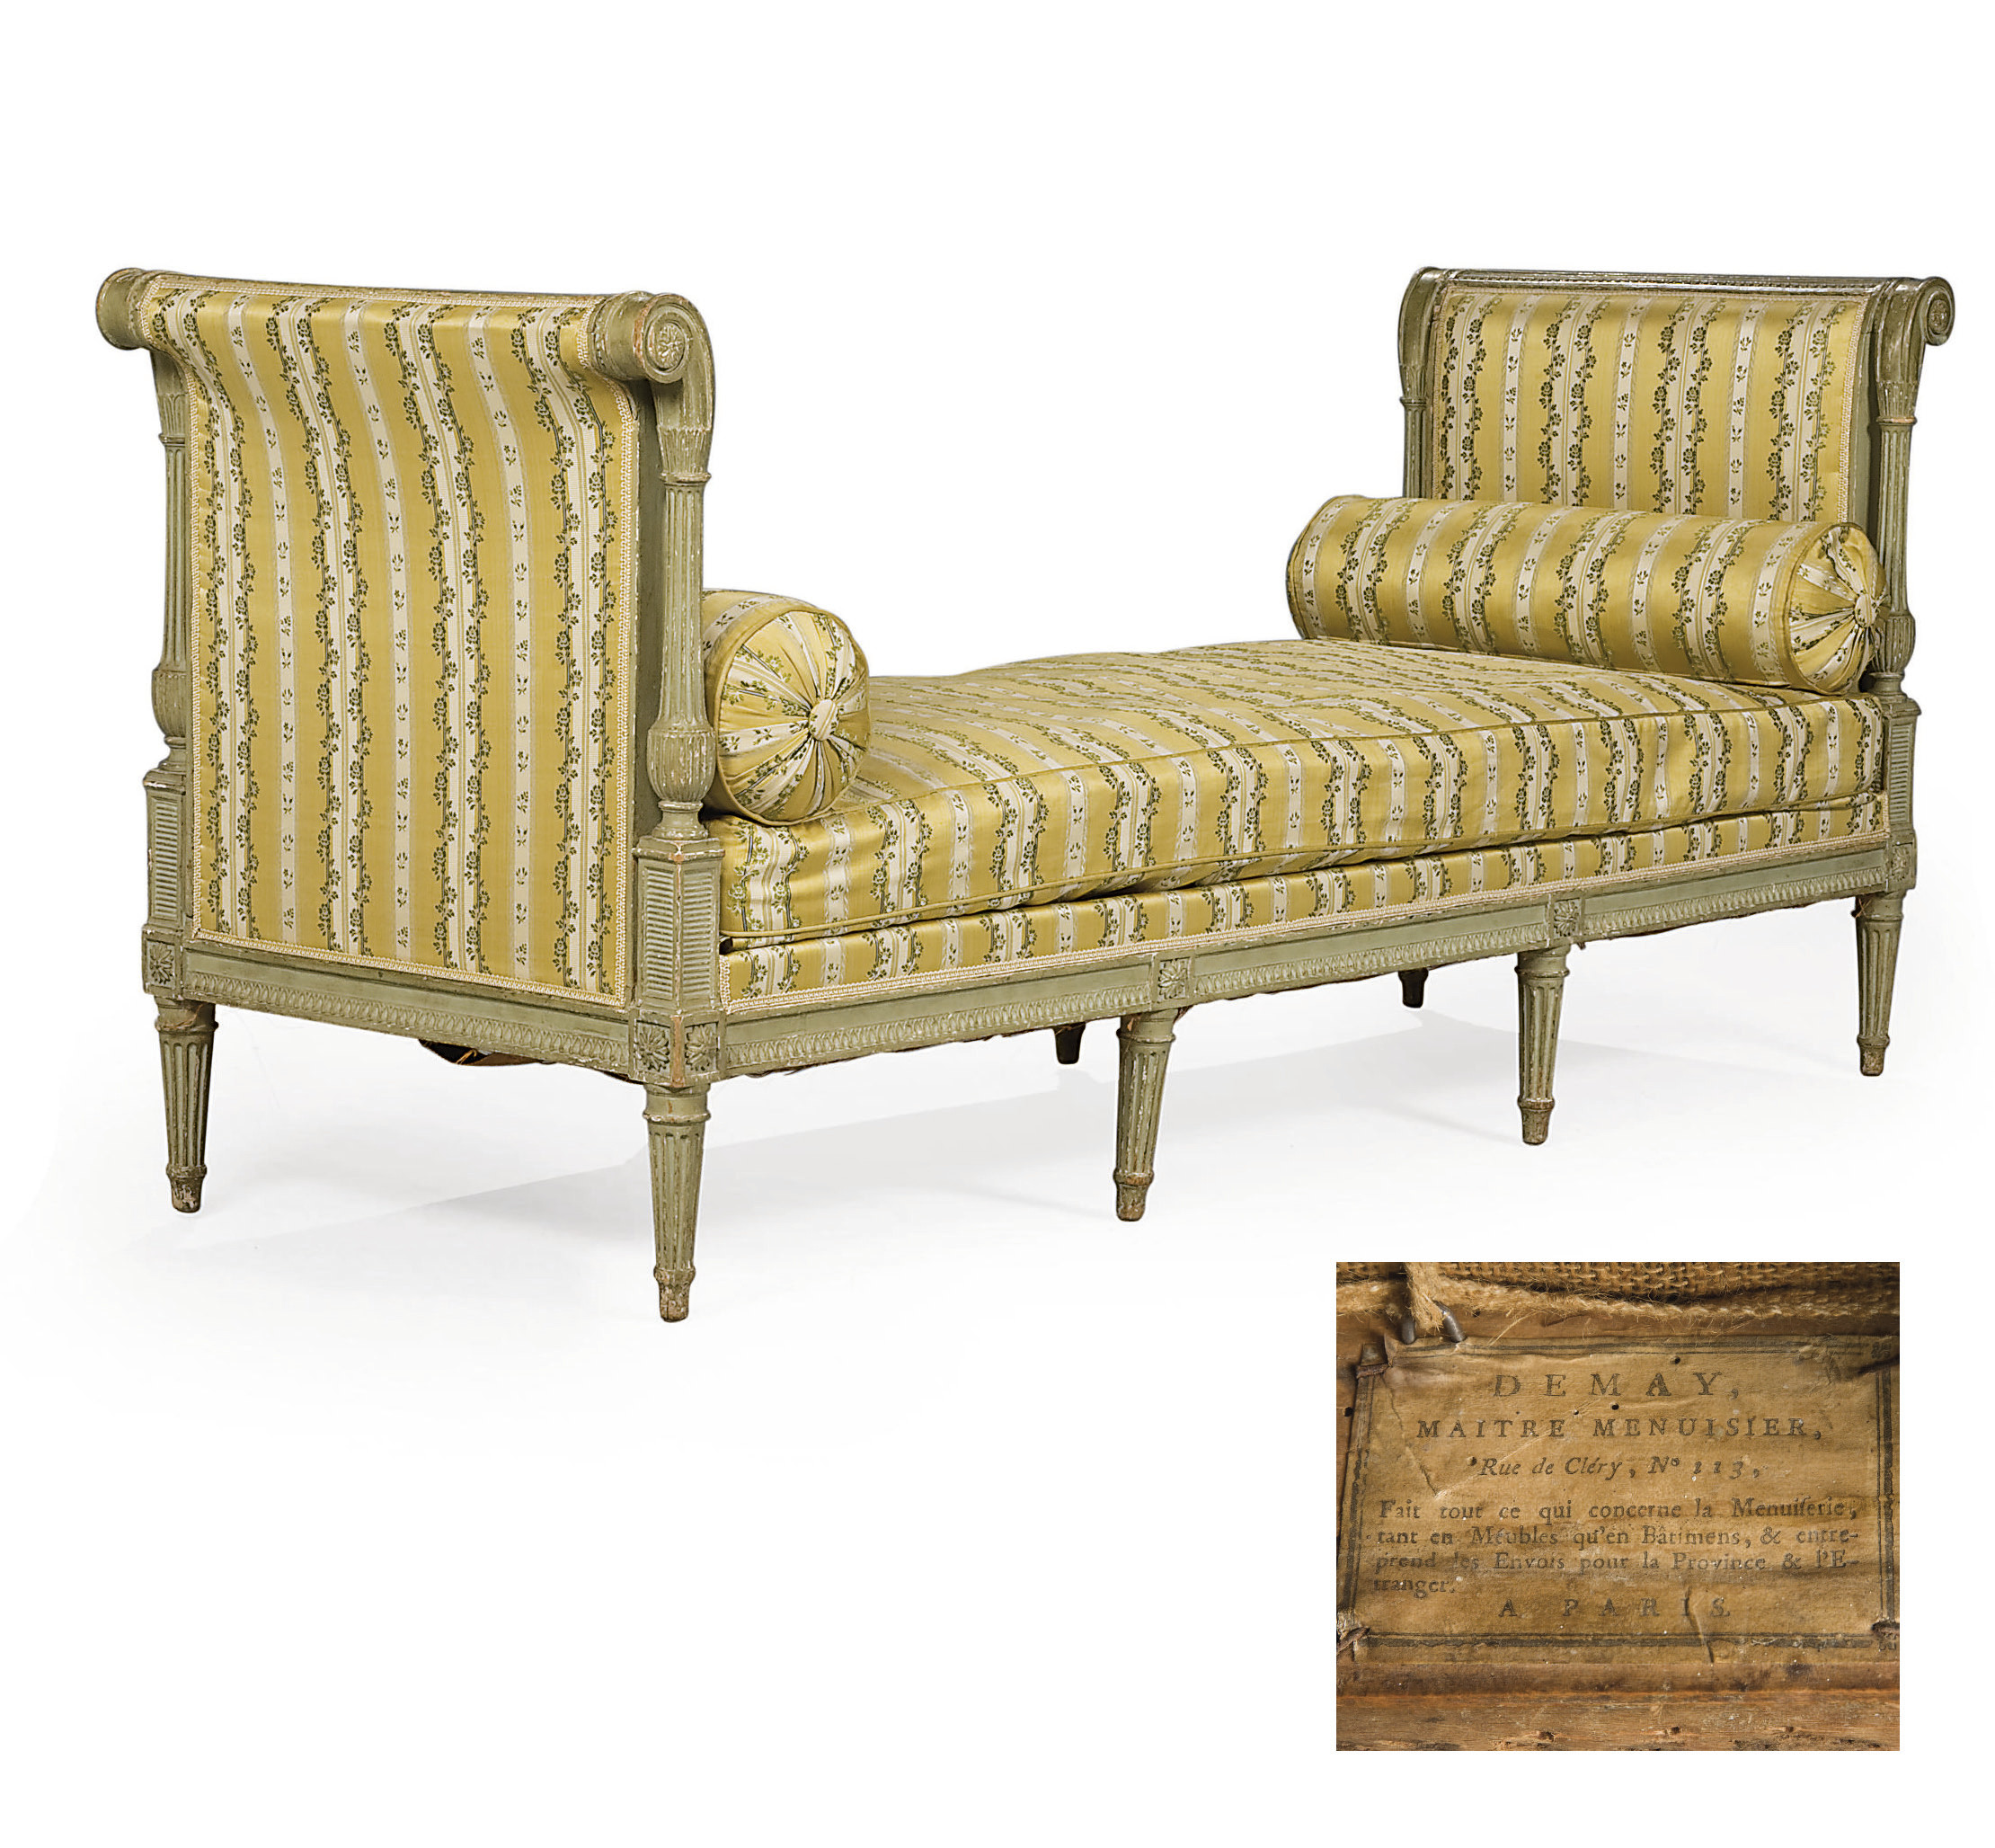 A LOUIS XVI GREY-PAINTED DAYBED